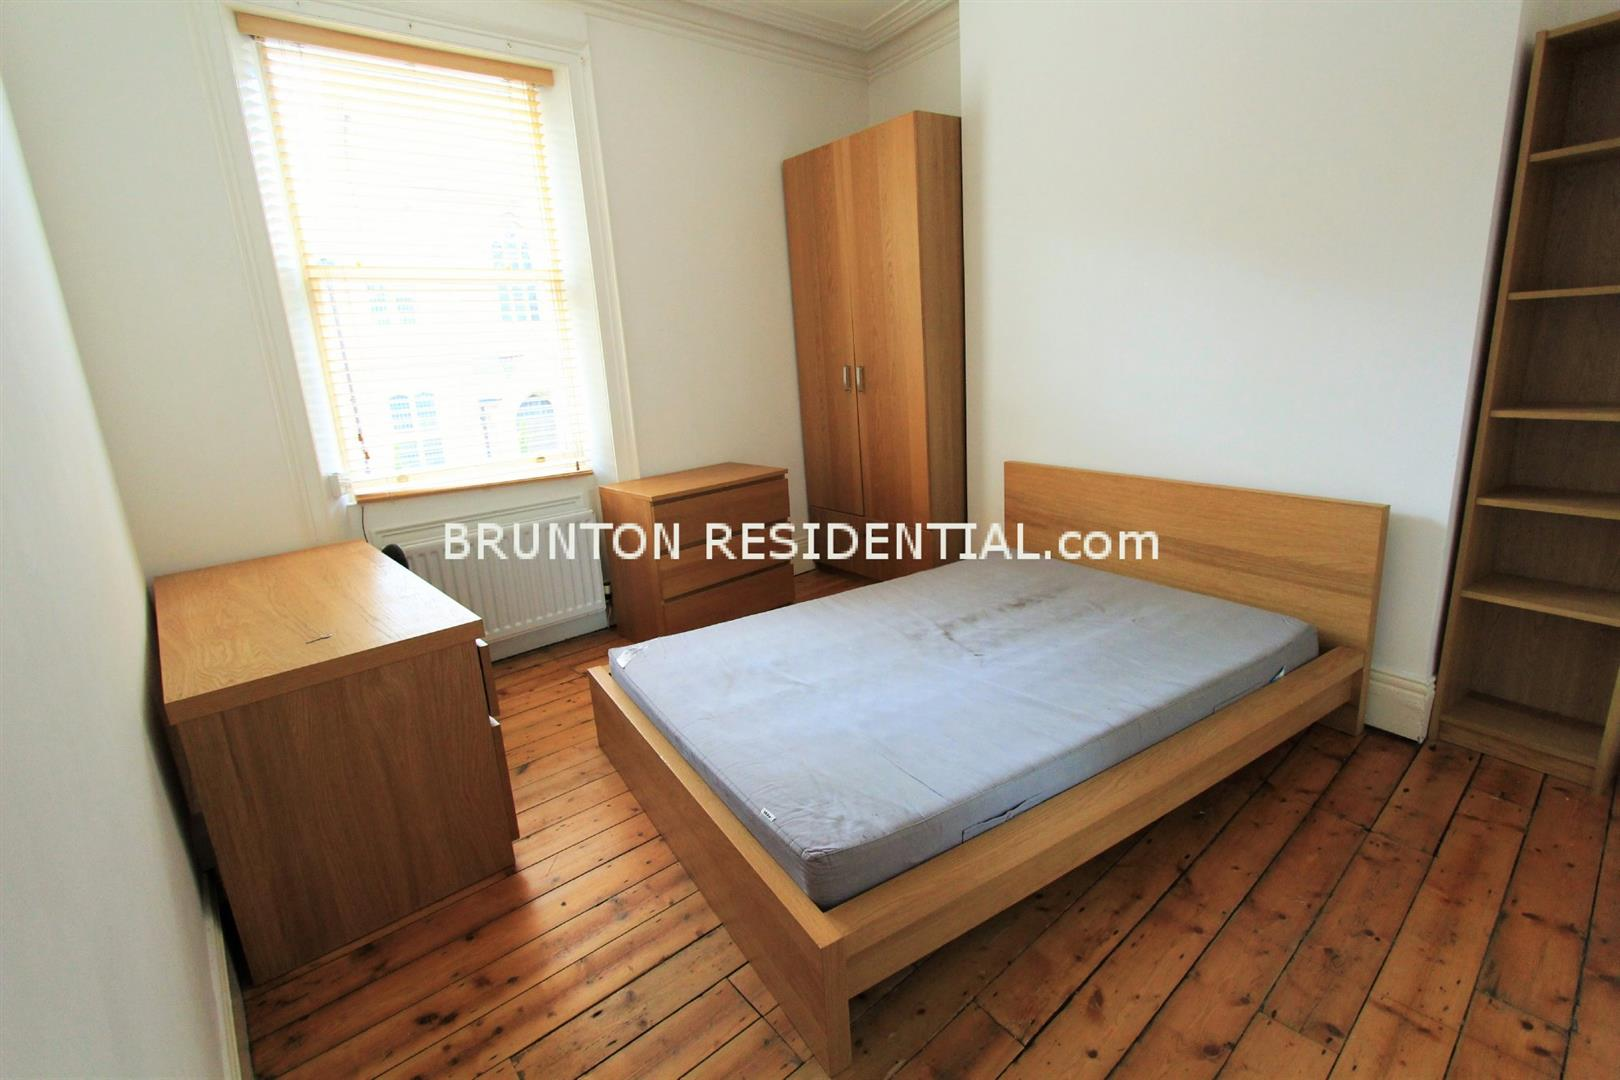 6 bed terraced house to rent in Spital Tongues, NE2 4AH  - Property Image 7